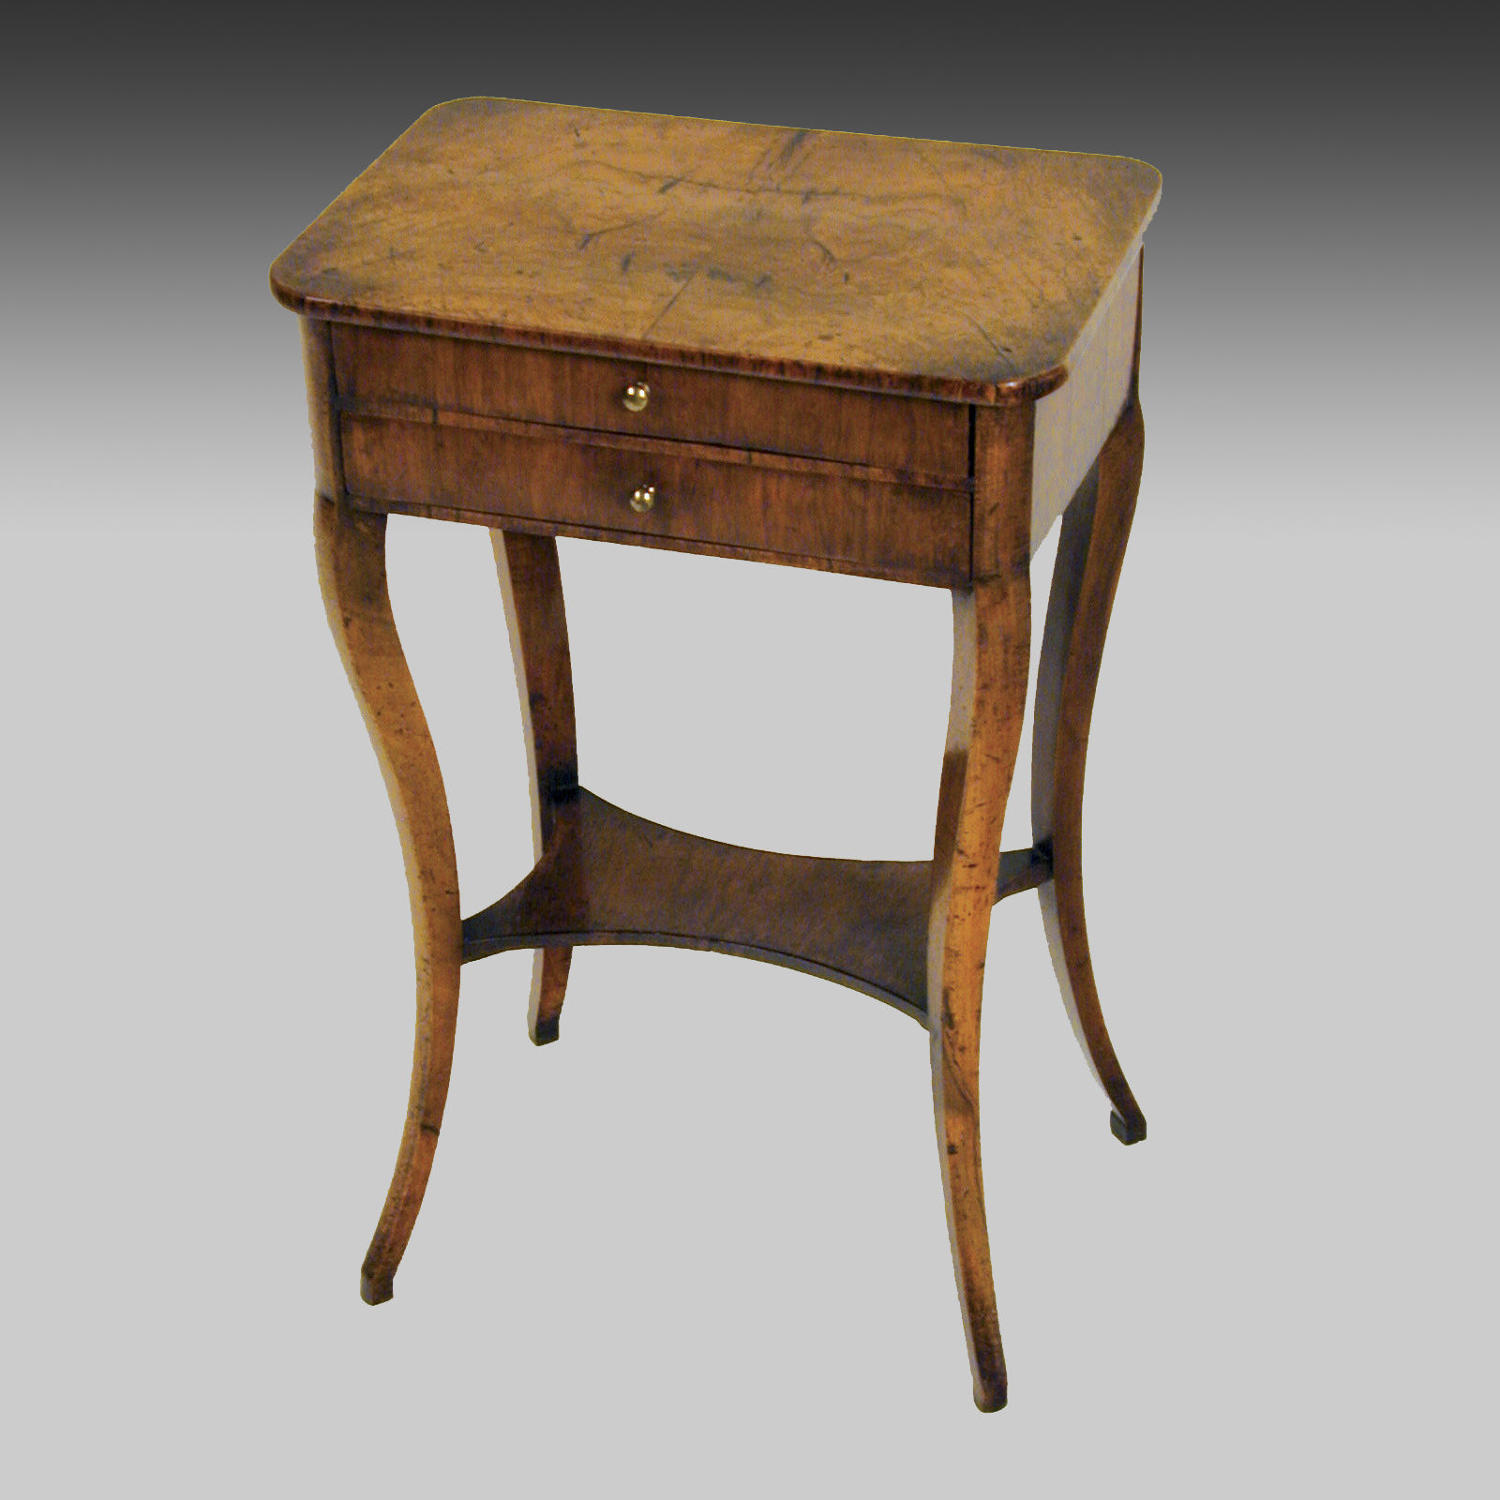 Small 19th century walnut centre table